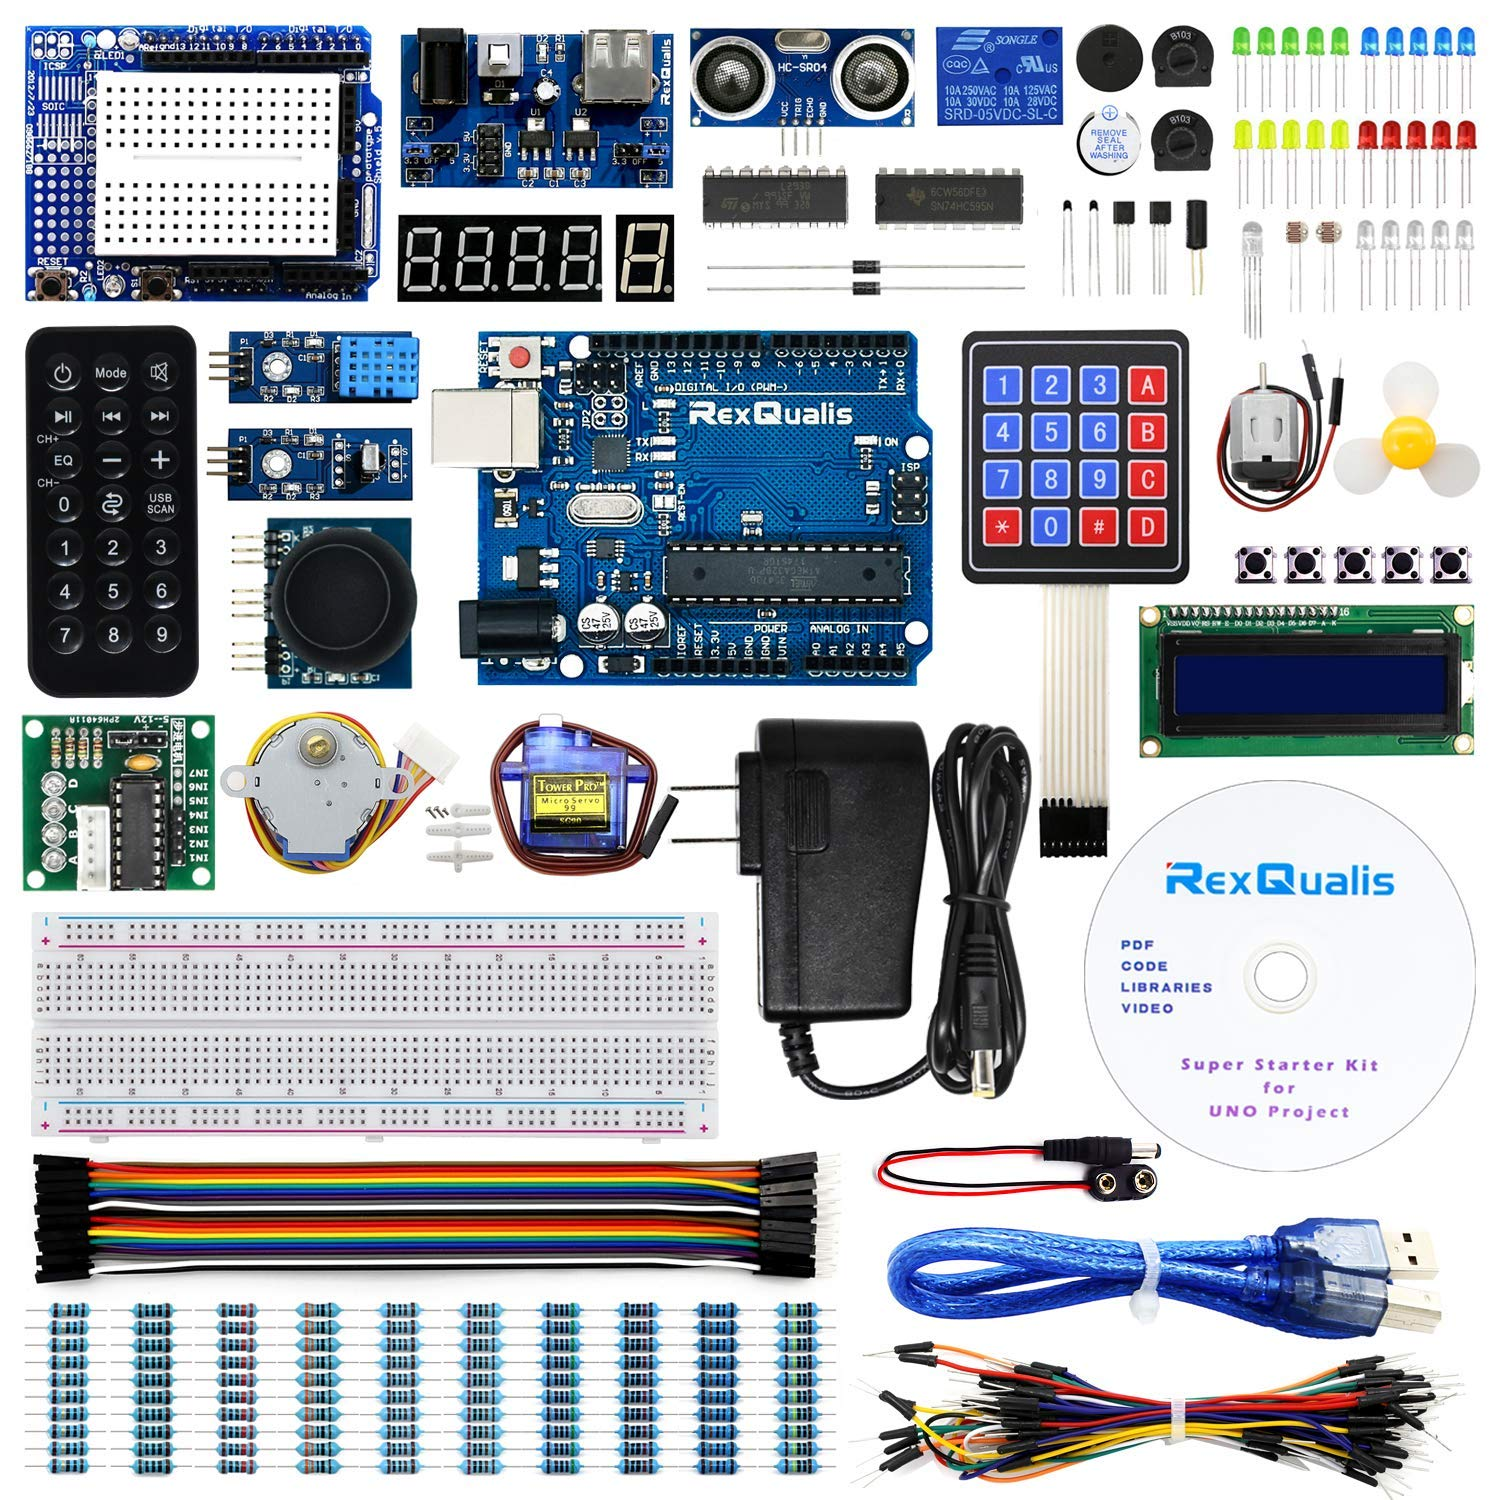 REXQualis Arduino UNO Project Super Starter Kit for Arduino w/UNO R3 Development Board, LCD1602, Membrane Switch, Servo, Stepper Motor, Power Supply Adapter, DHT11, IR Receiver, Detailed Tutorial